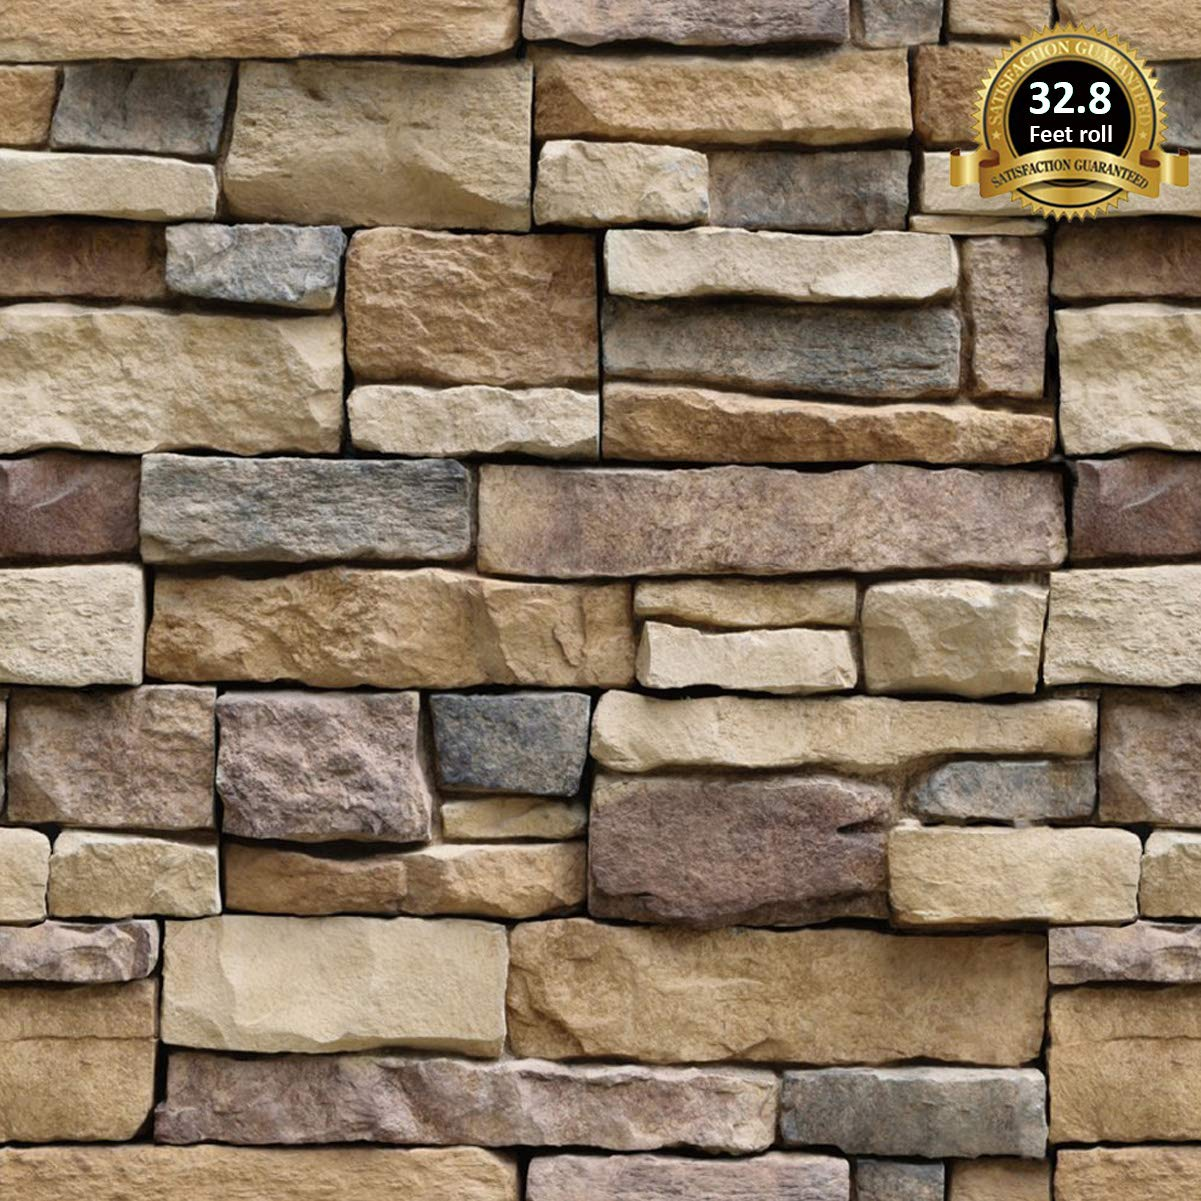 Easily Removable Wallpaper Brick Peel and Stick Wallpaper Lependor 17.71 X 118 Stone Peel and Stick Wallpaper Self Adhesive Wallpaper 17.71 X 9.8 ft